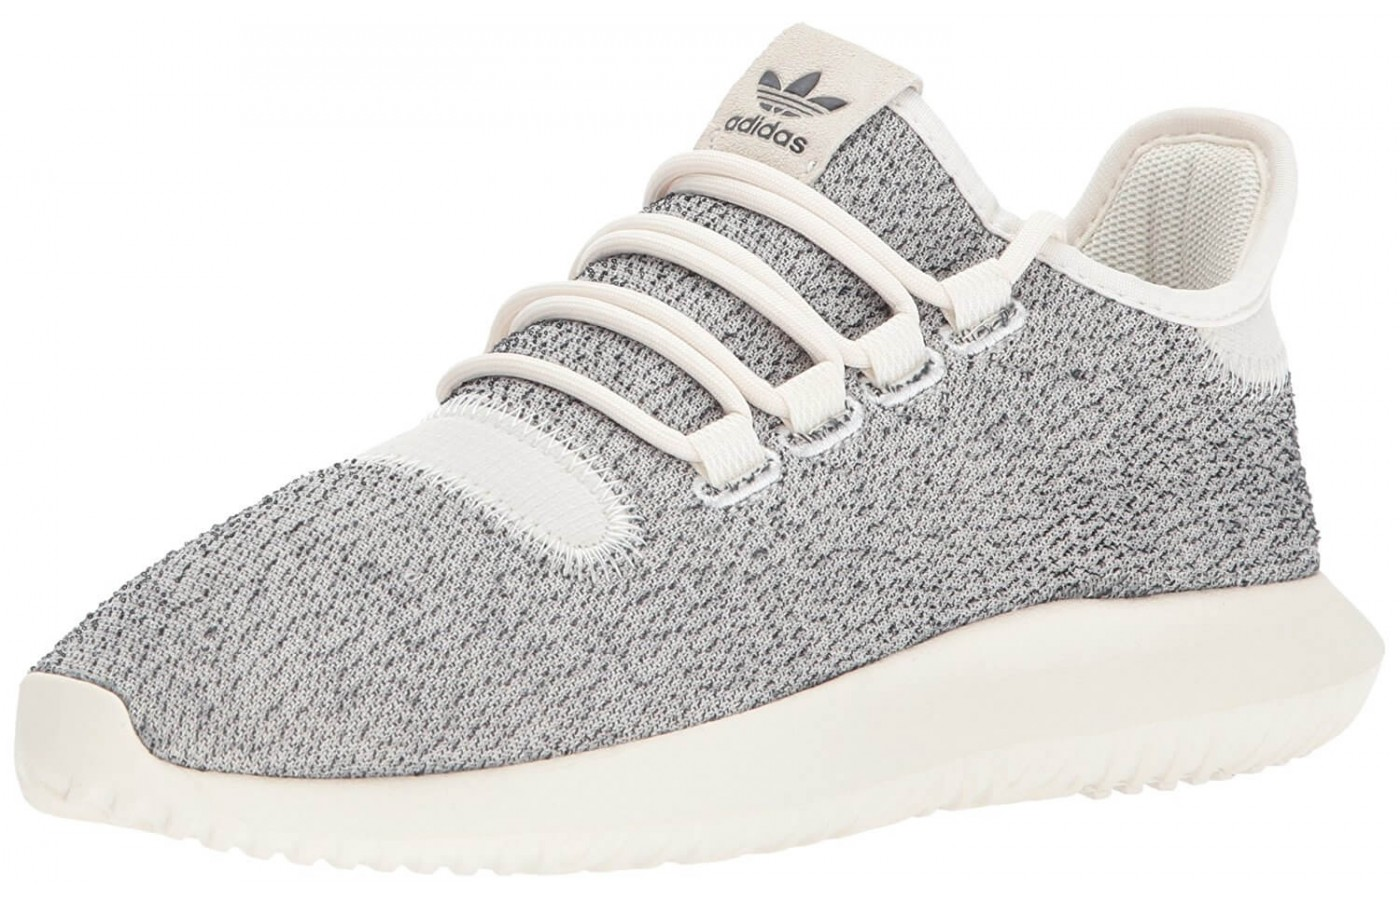 The Adidas Tubular Shadow features EVA cushioning